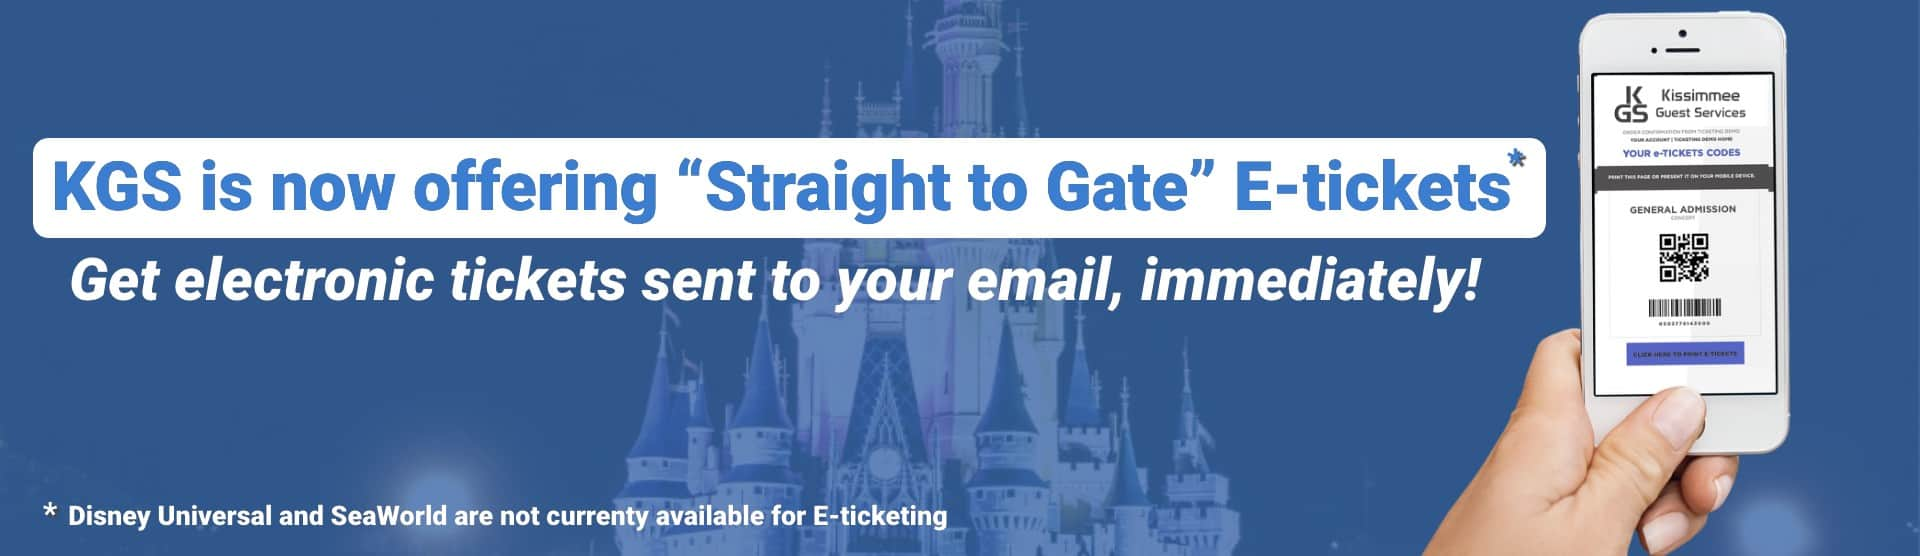 KGS Straight To Gate E-Ticket KGS Discount Attraction Tickets Orlando